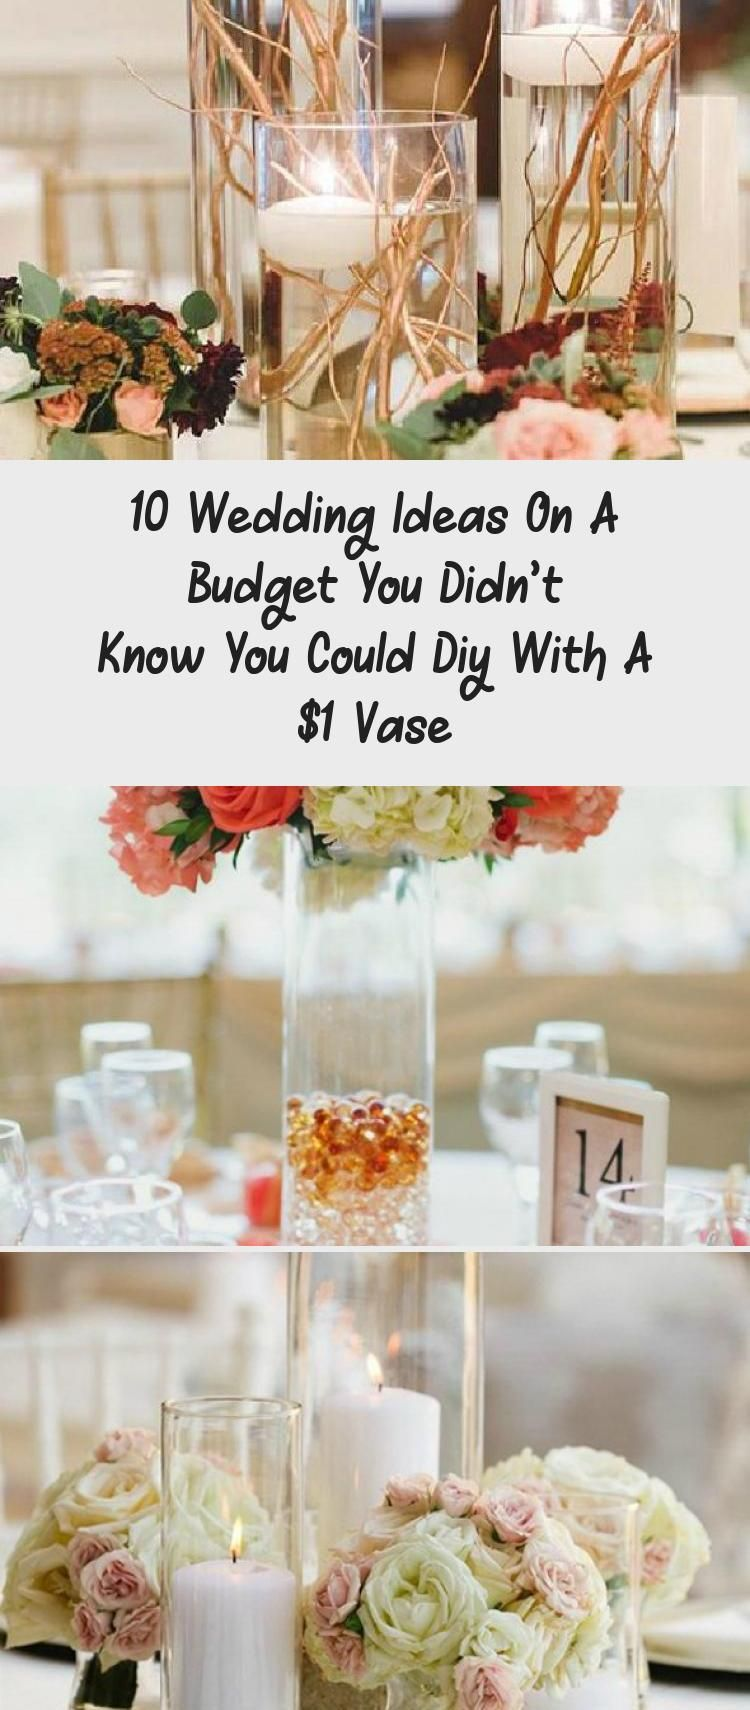 My Blog In 2020 Rustic Wedding Games Cheap Wedding Centerpieces Rustic Wedding Signs